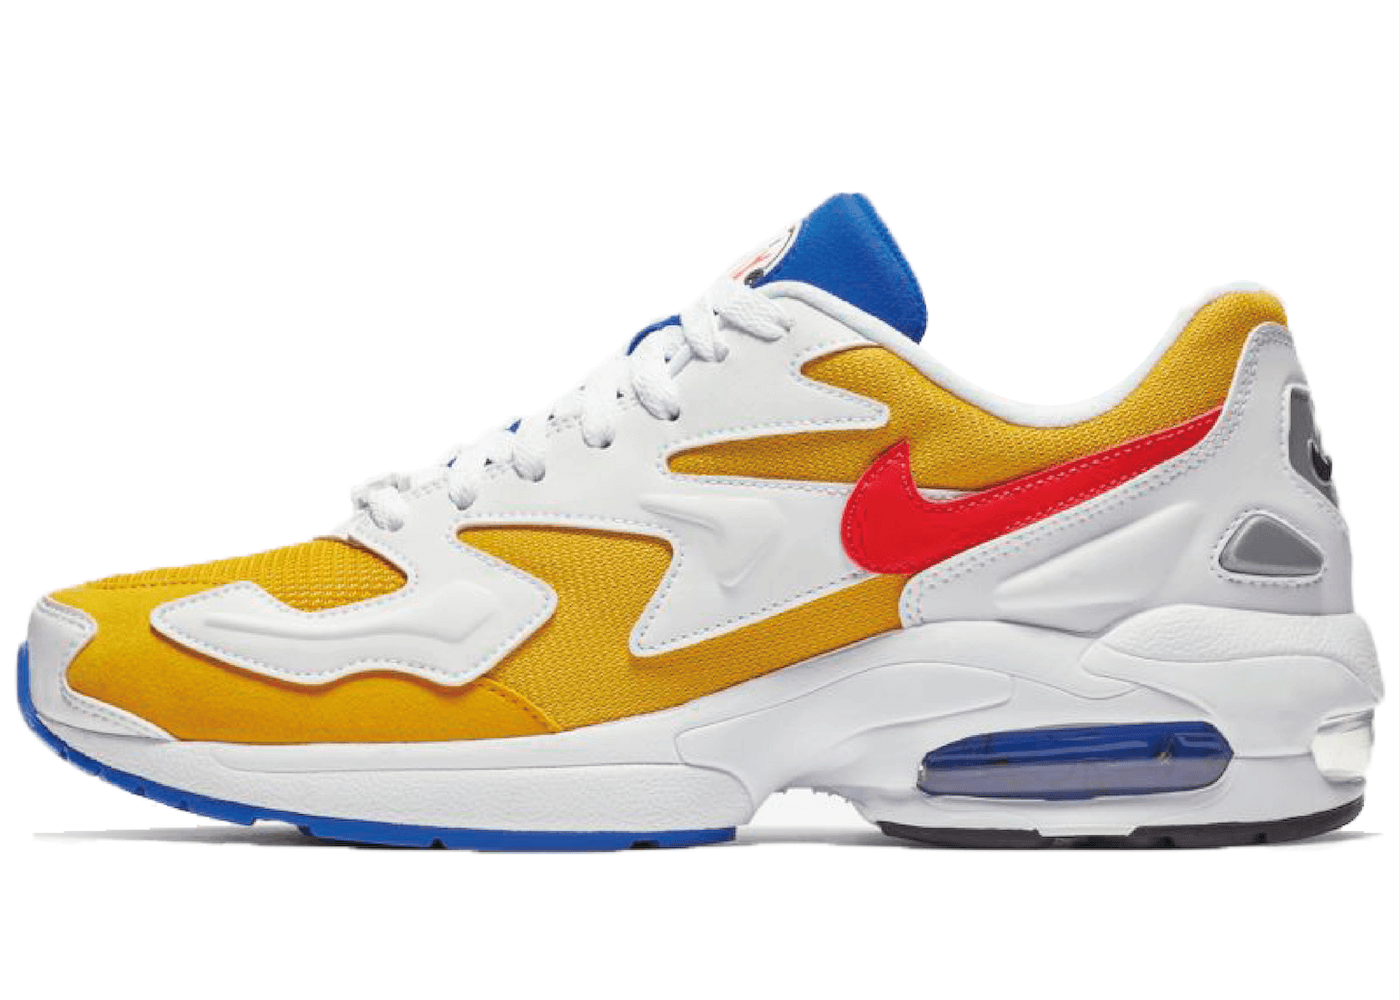 Nike Air Max 2 Light 'University Gold Flash Crimson'の写真